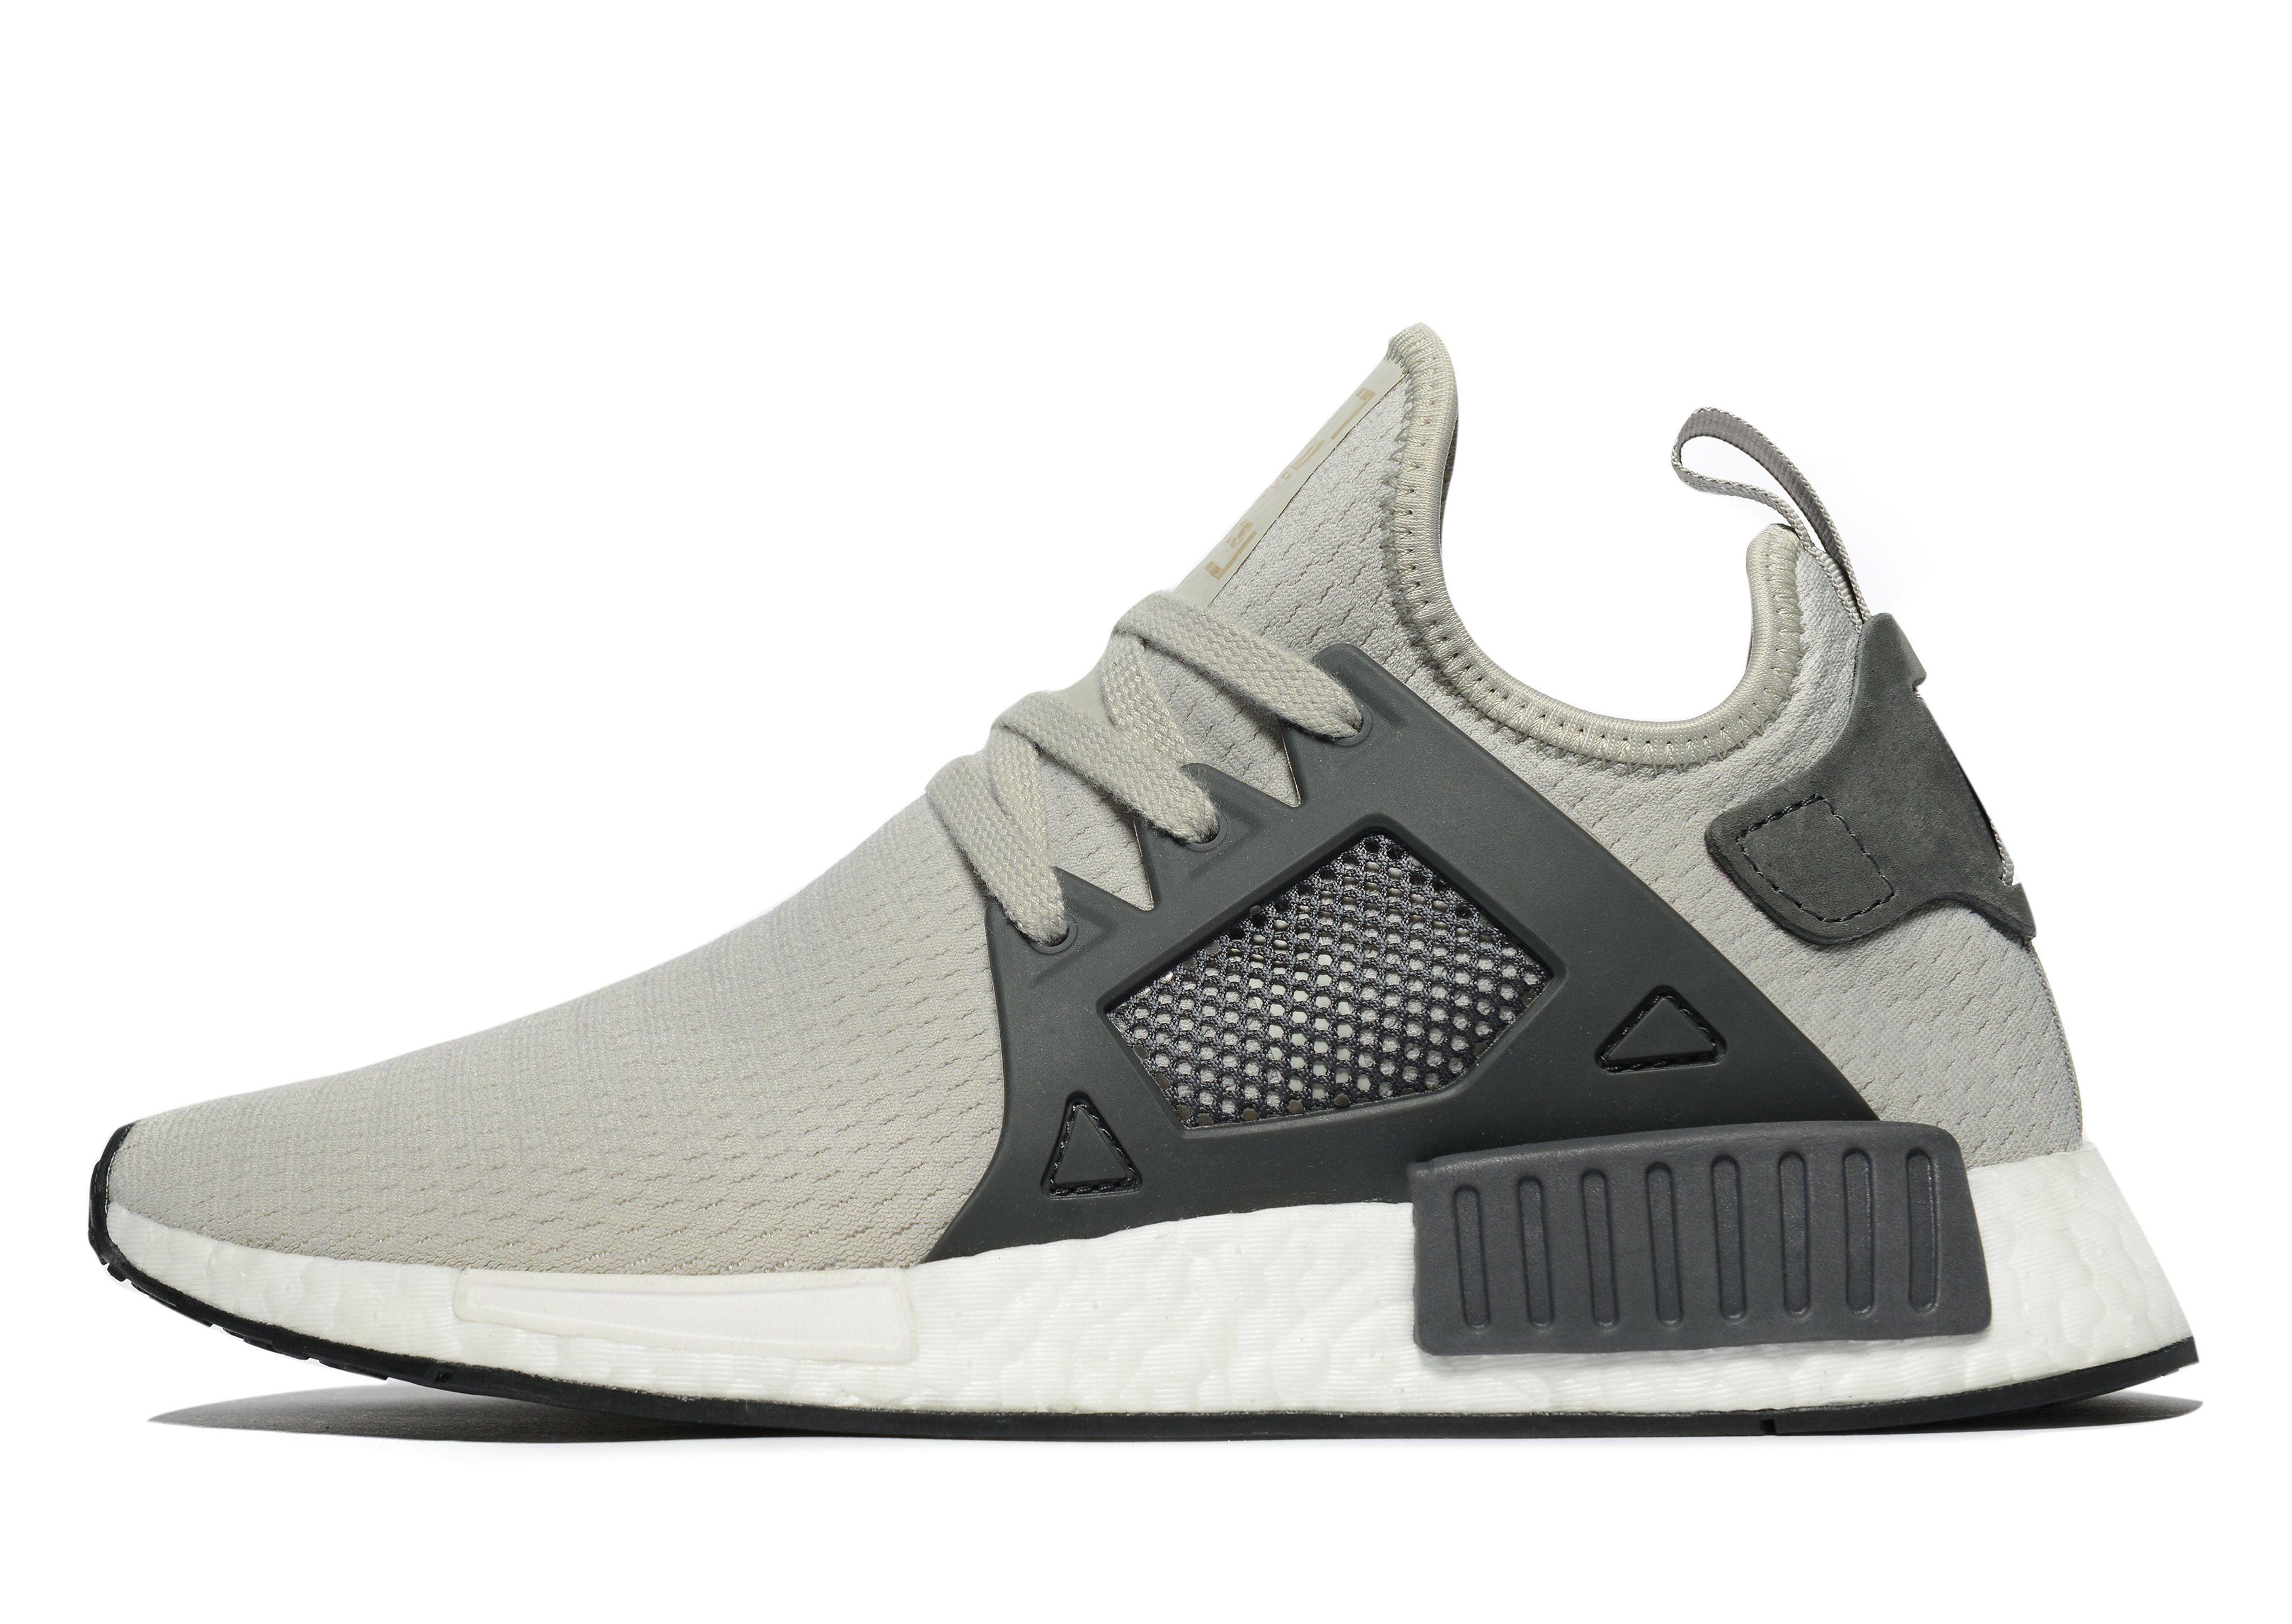 adidas Originals NMD - Shop online for adidas Originals NMD with JD Sports,  the UK& leading sports fashion retailer.